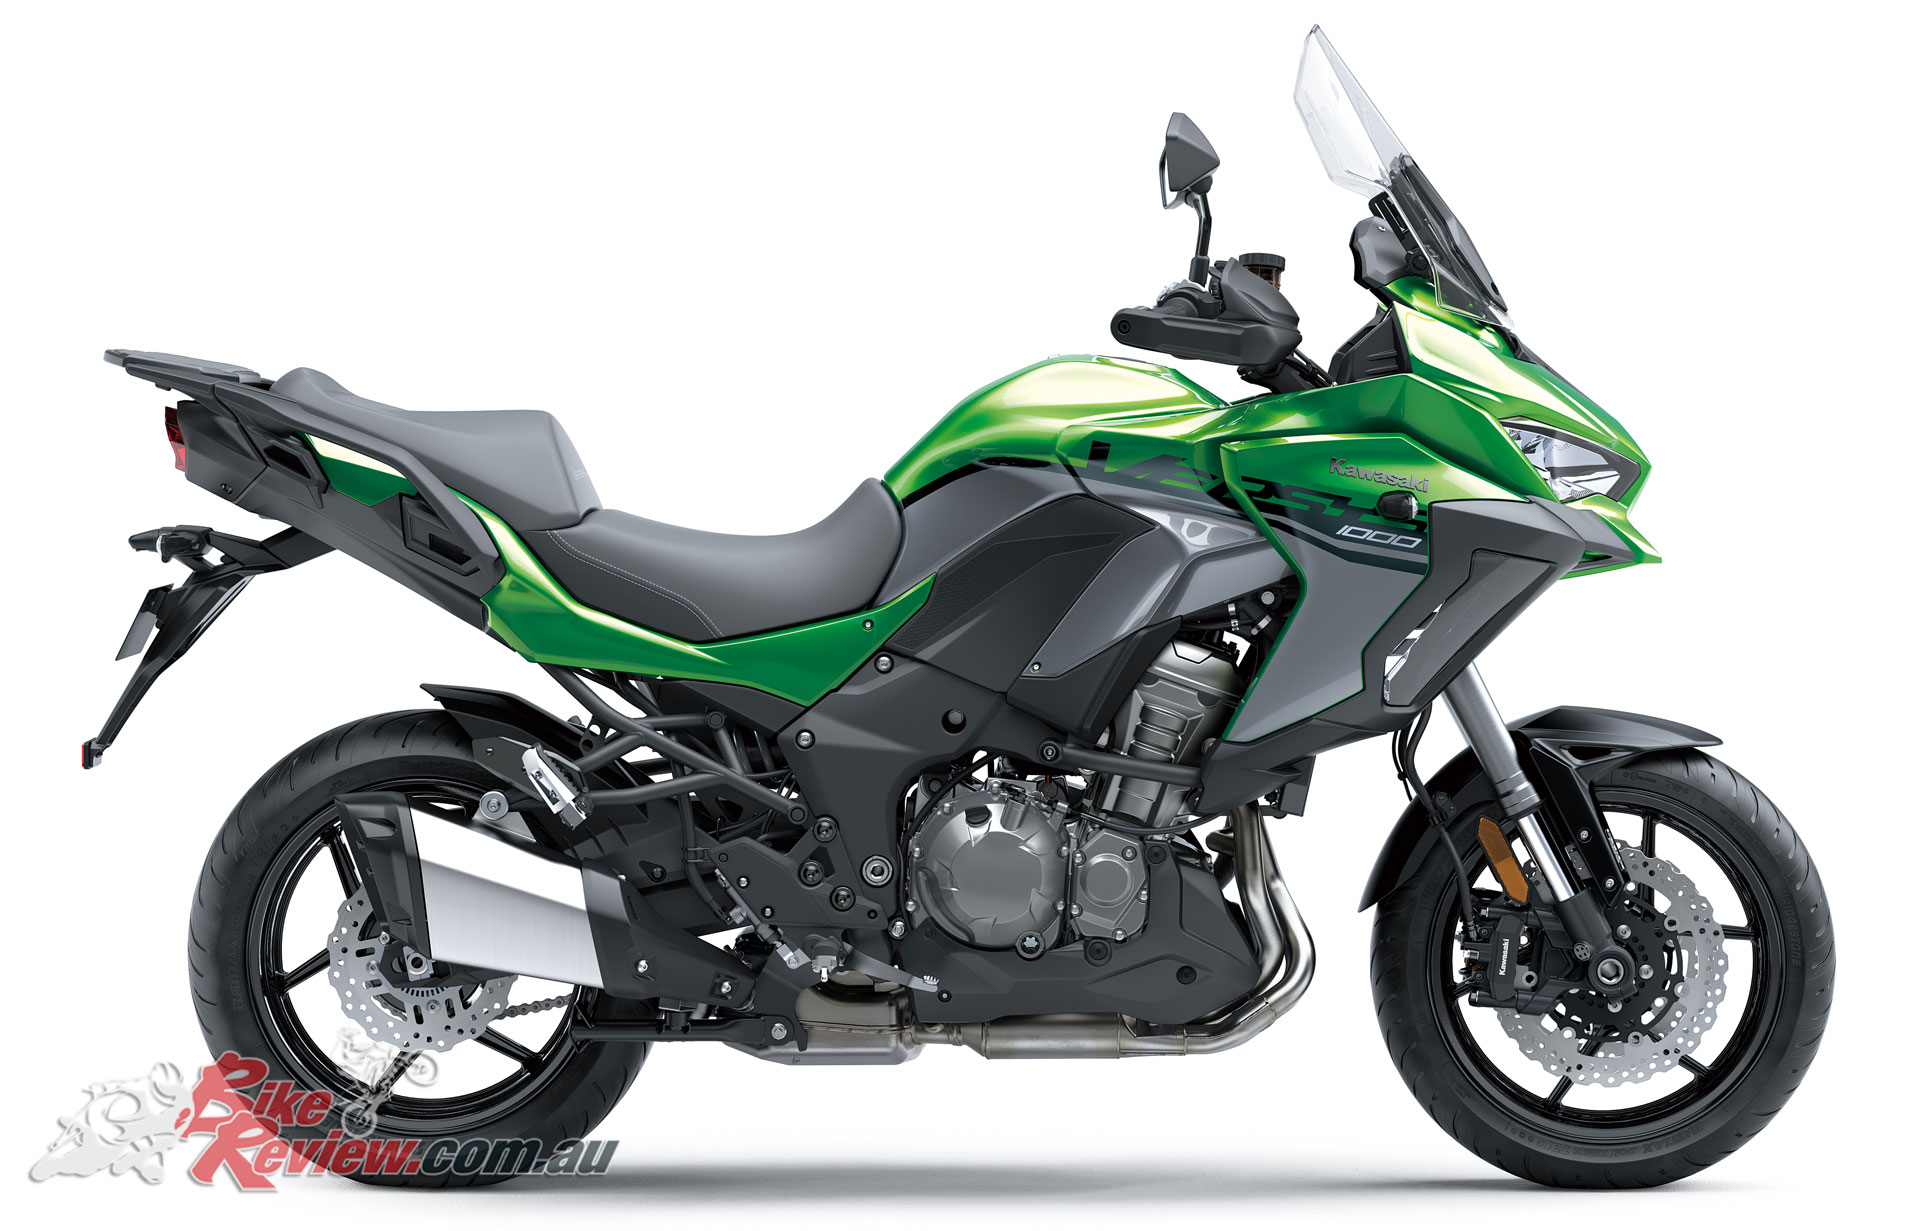 model update 2019 kawasaki versys 1000 se bike review. Black Bedroom Furniture Sets. Home Design Ideas